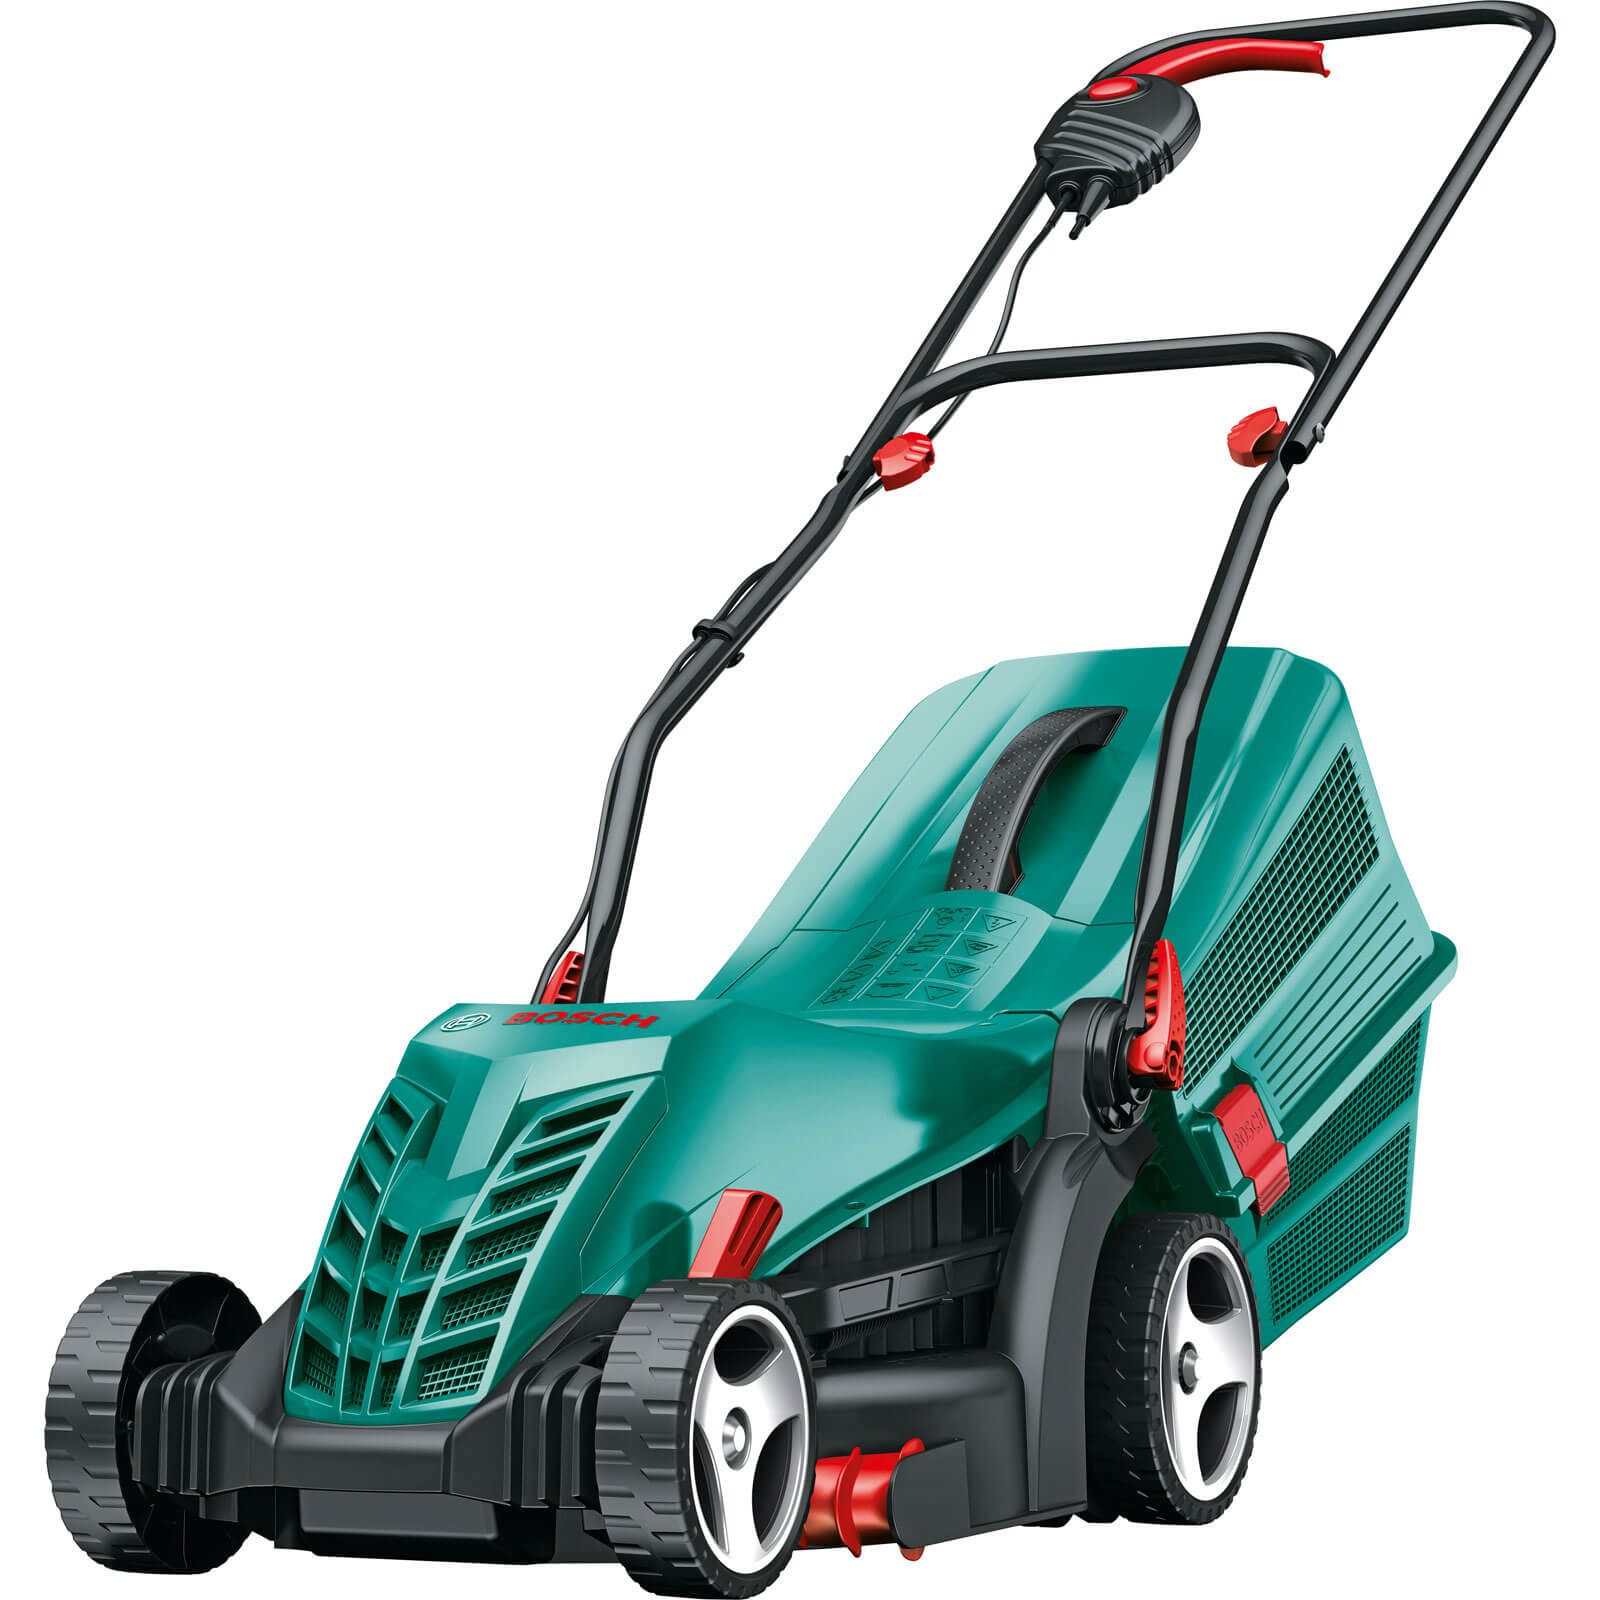 Bosch ROTAK 34 R Electric Rotary Lawnmower 340mm Cut Width 1300w 240v